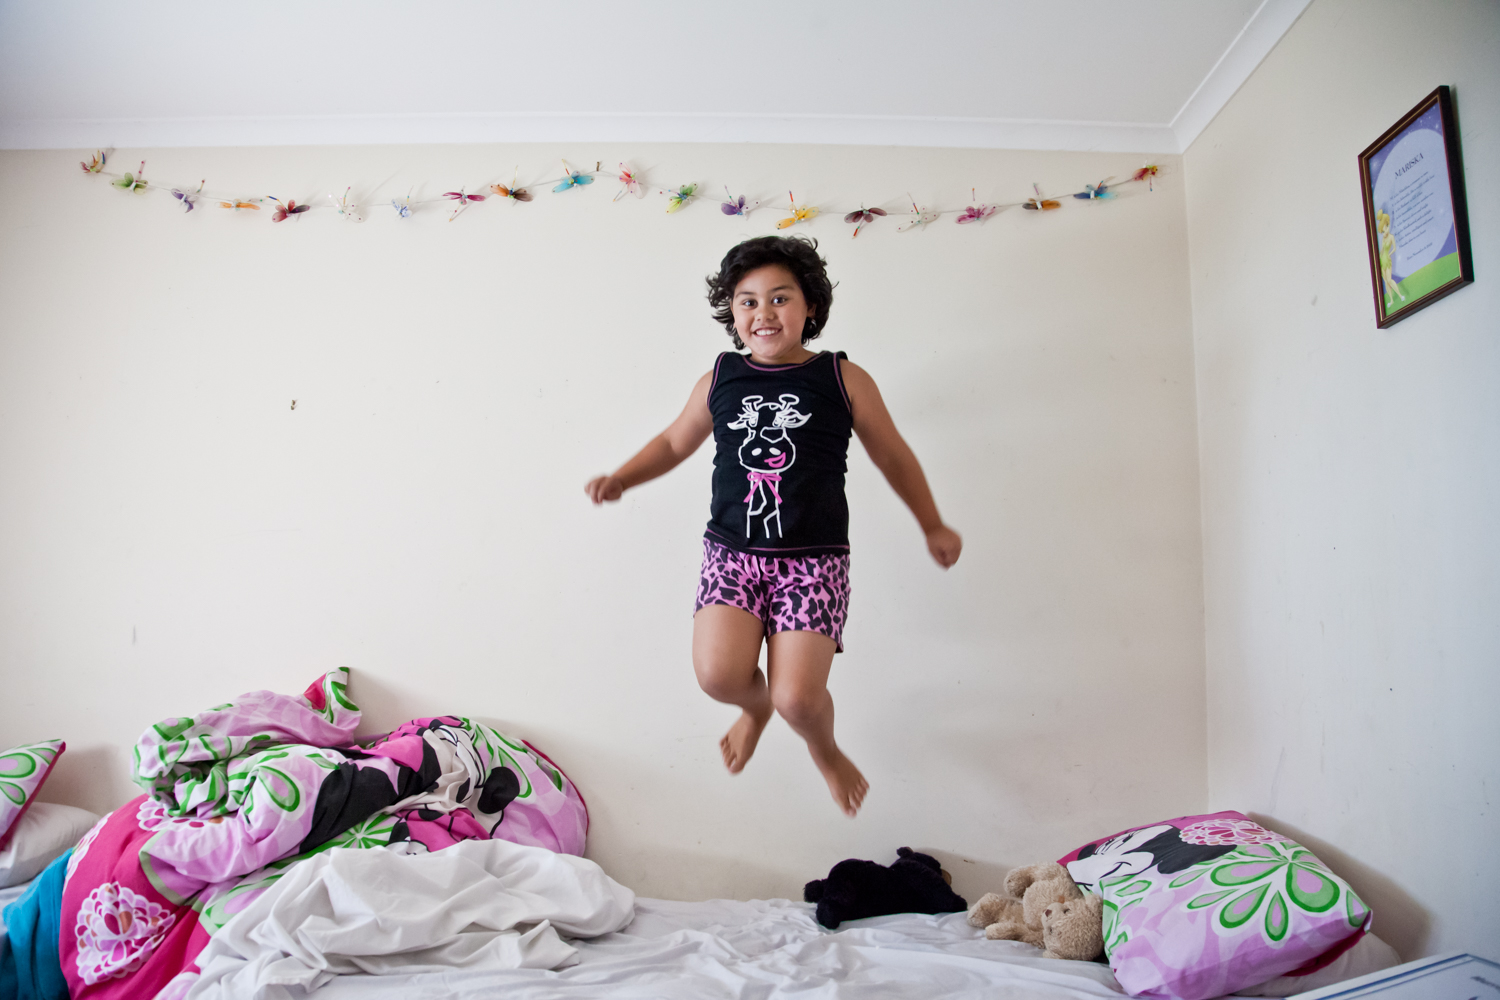 michelle_frances_photography_auckland_family_photographer_bed.jpg